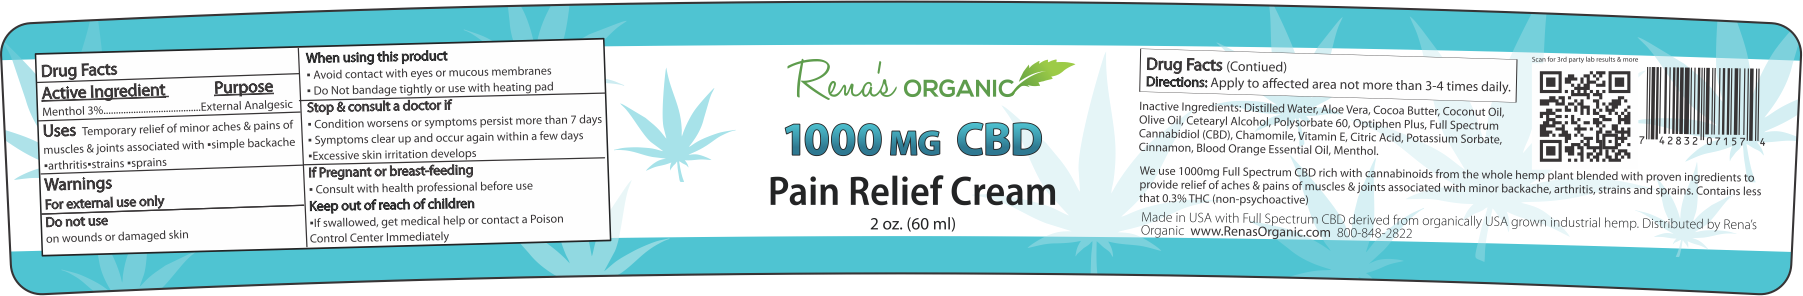 Label-1000mg-Pain